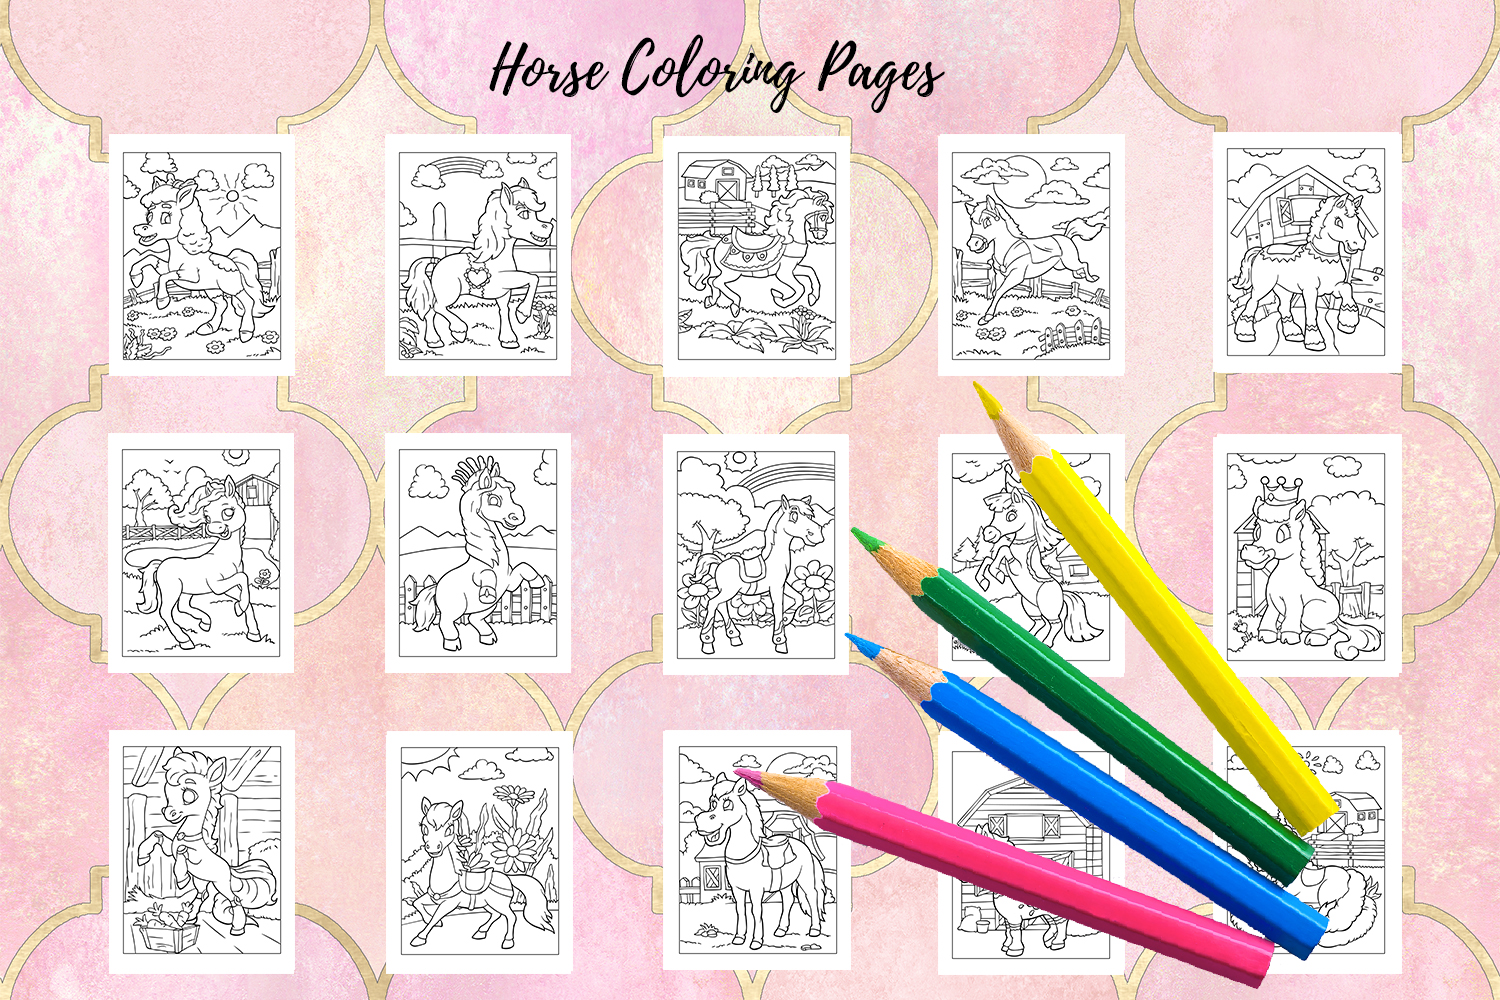 Coloring Pages For Kids - 15 Horse Coloring Pages example image 2